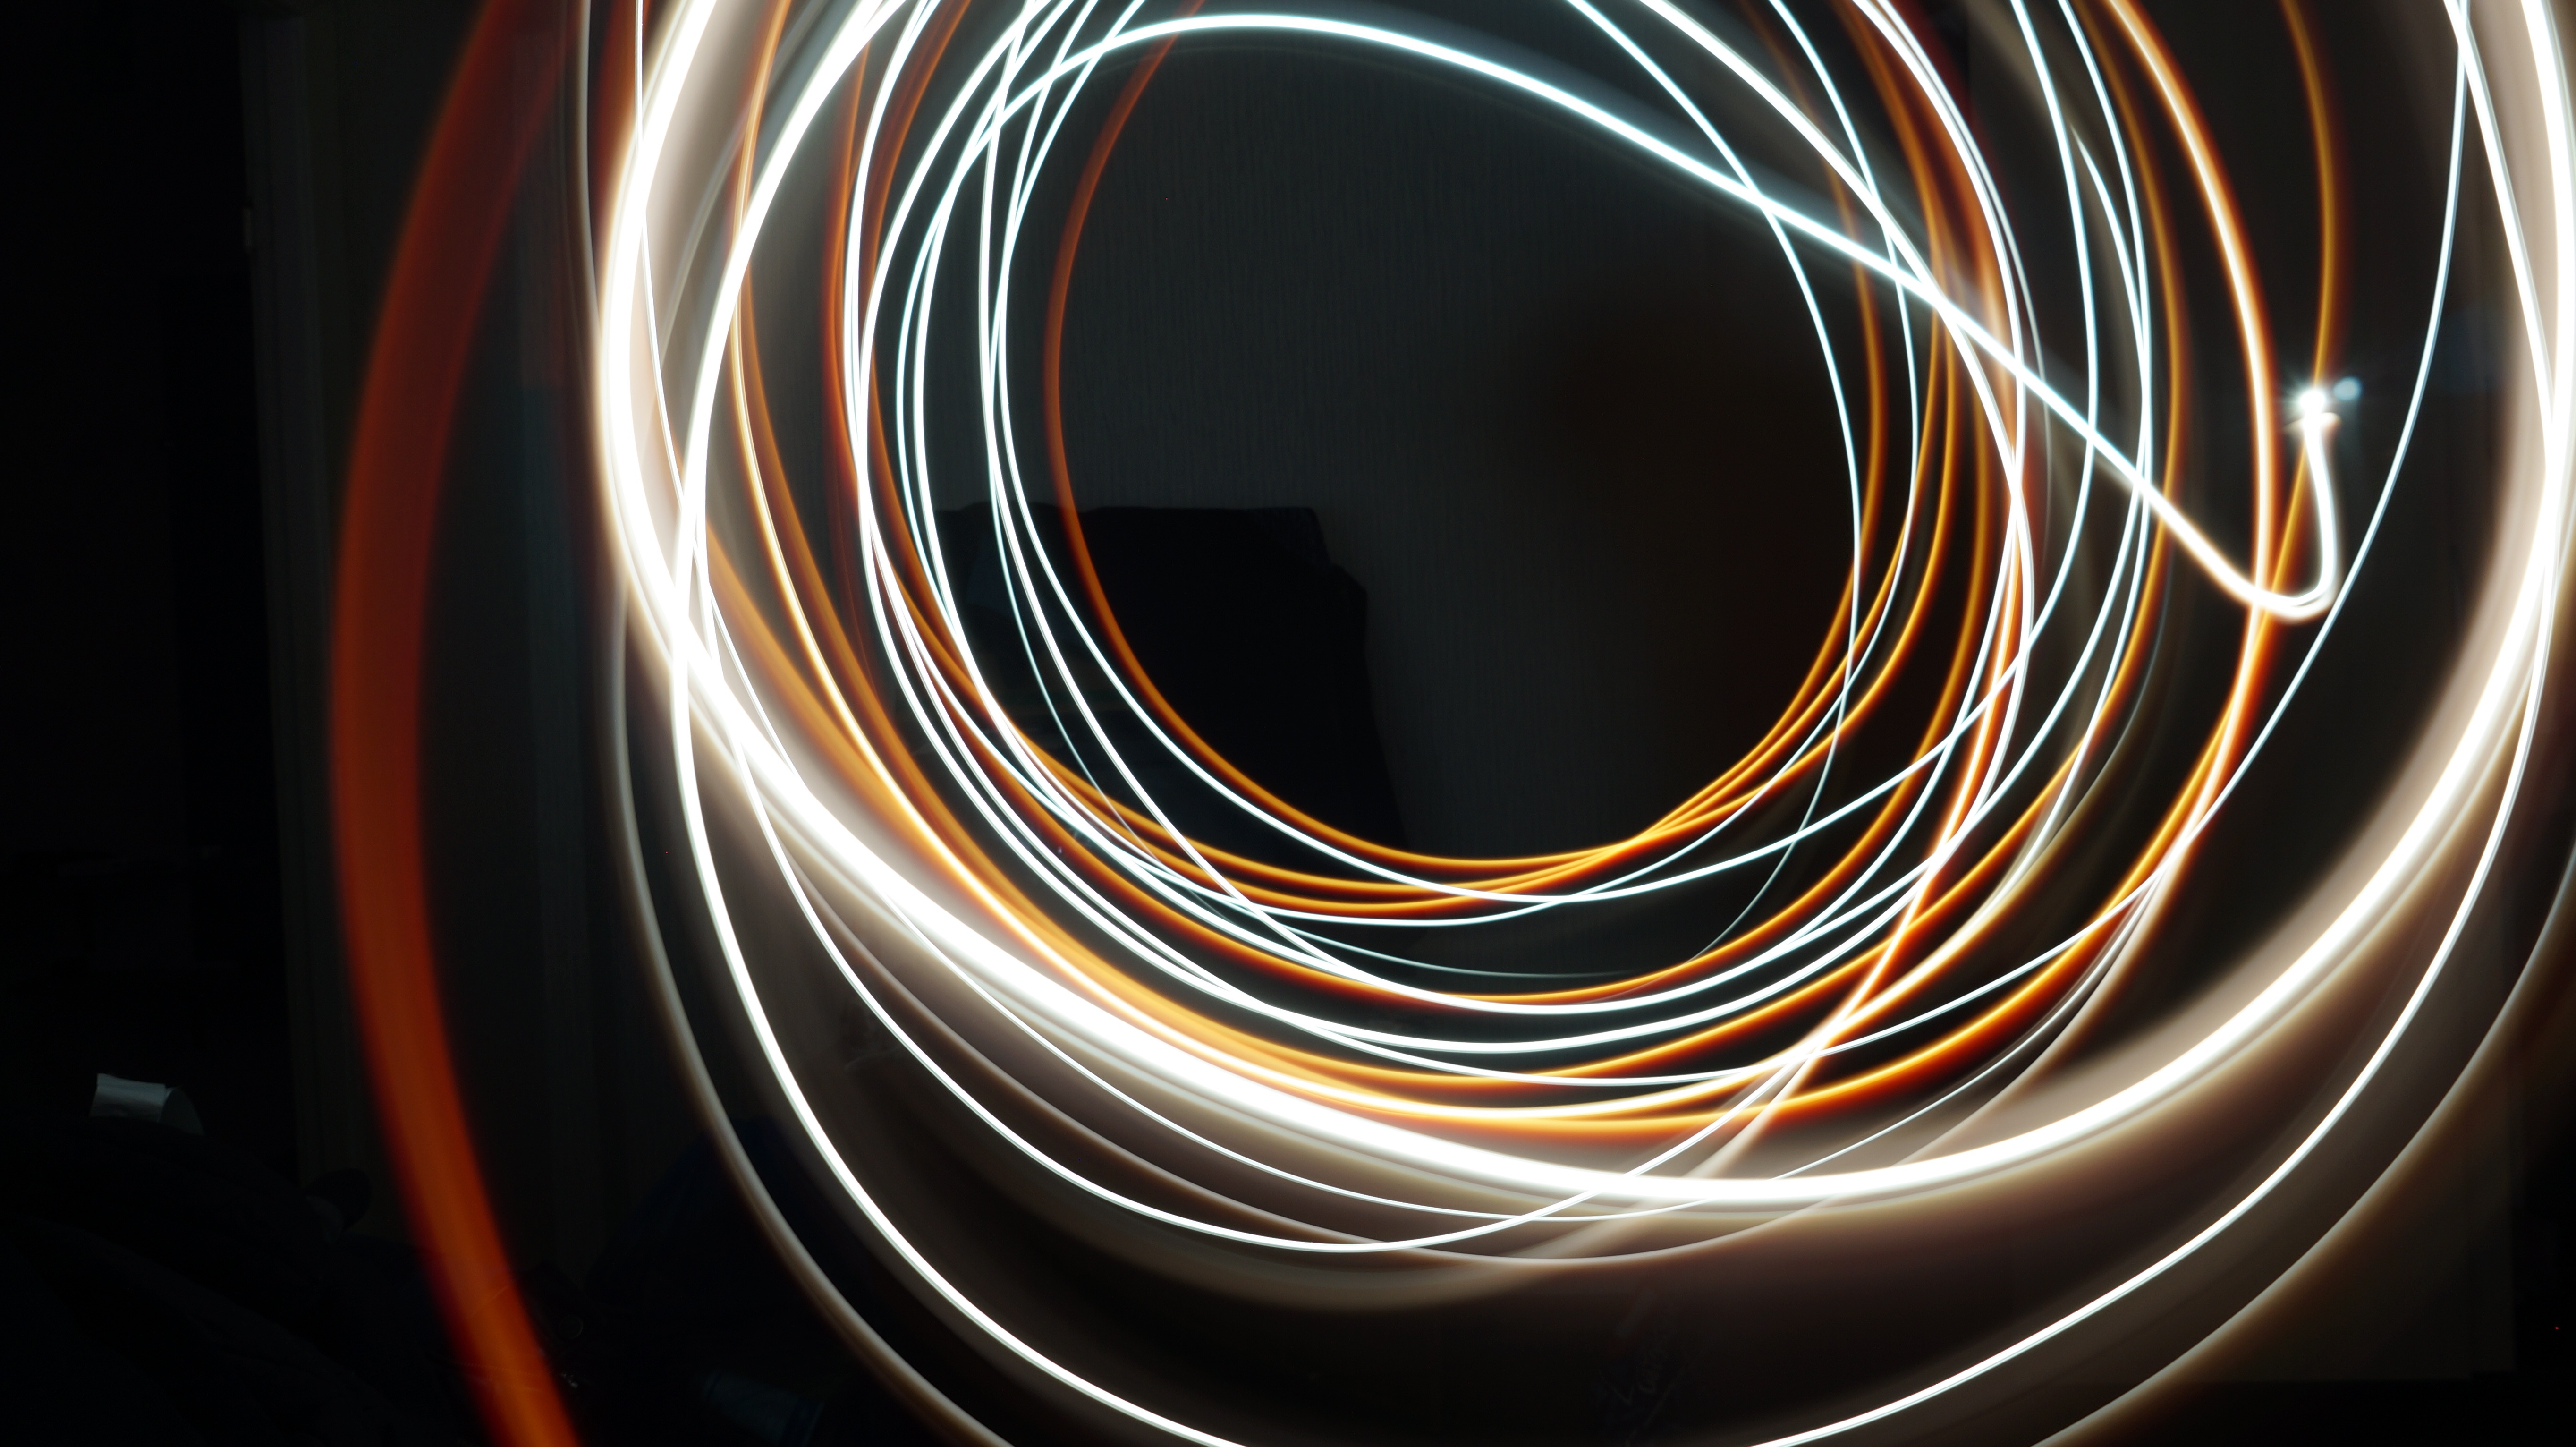 Lights in circular motion, light, motion, color, spiral, light wire